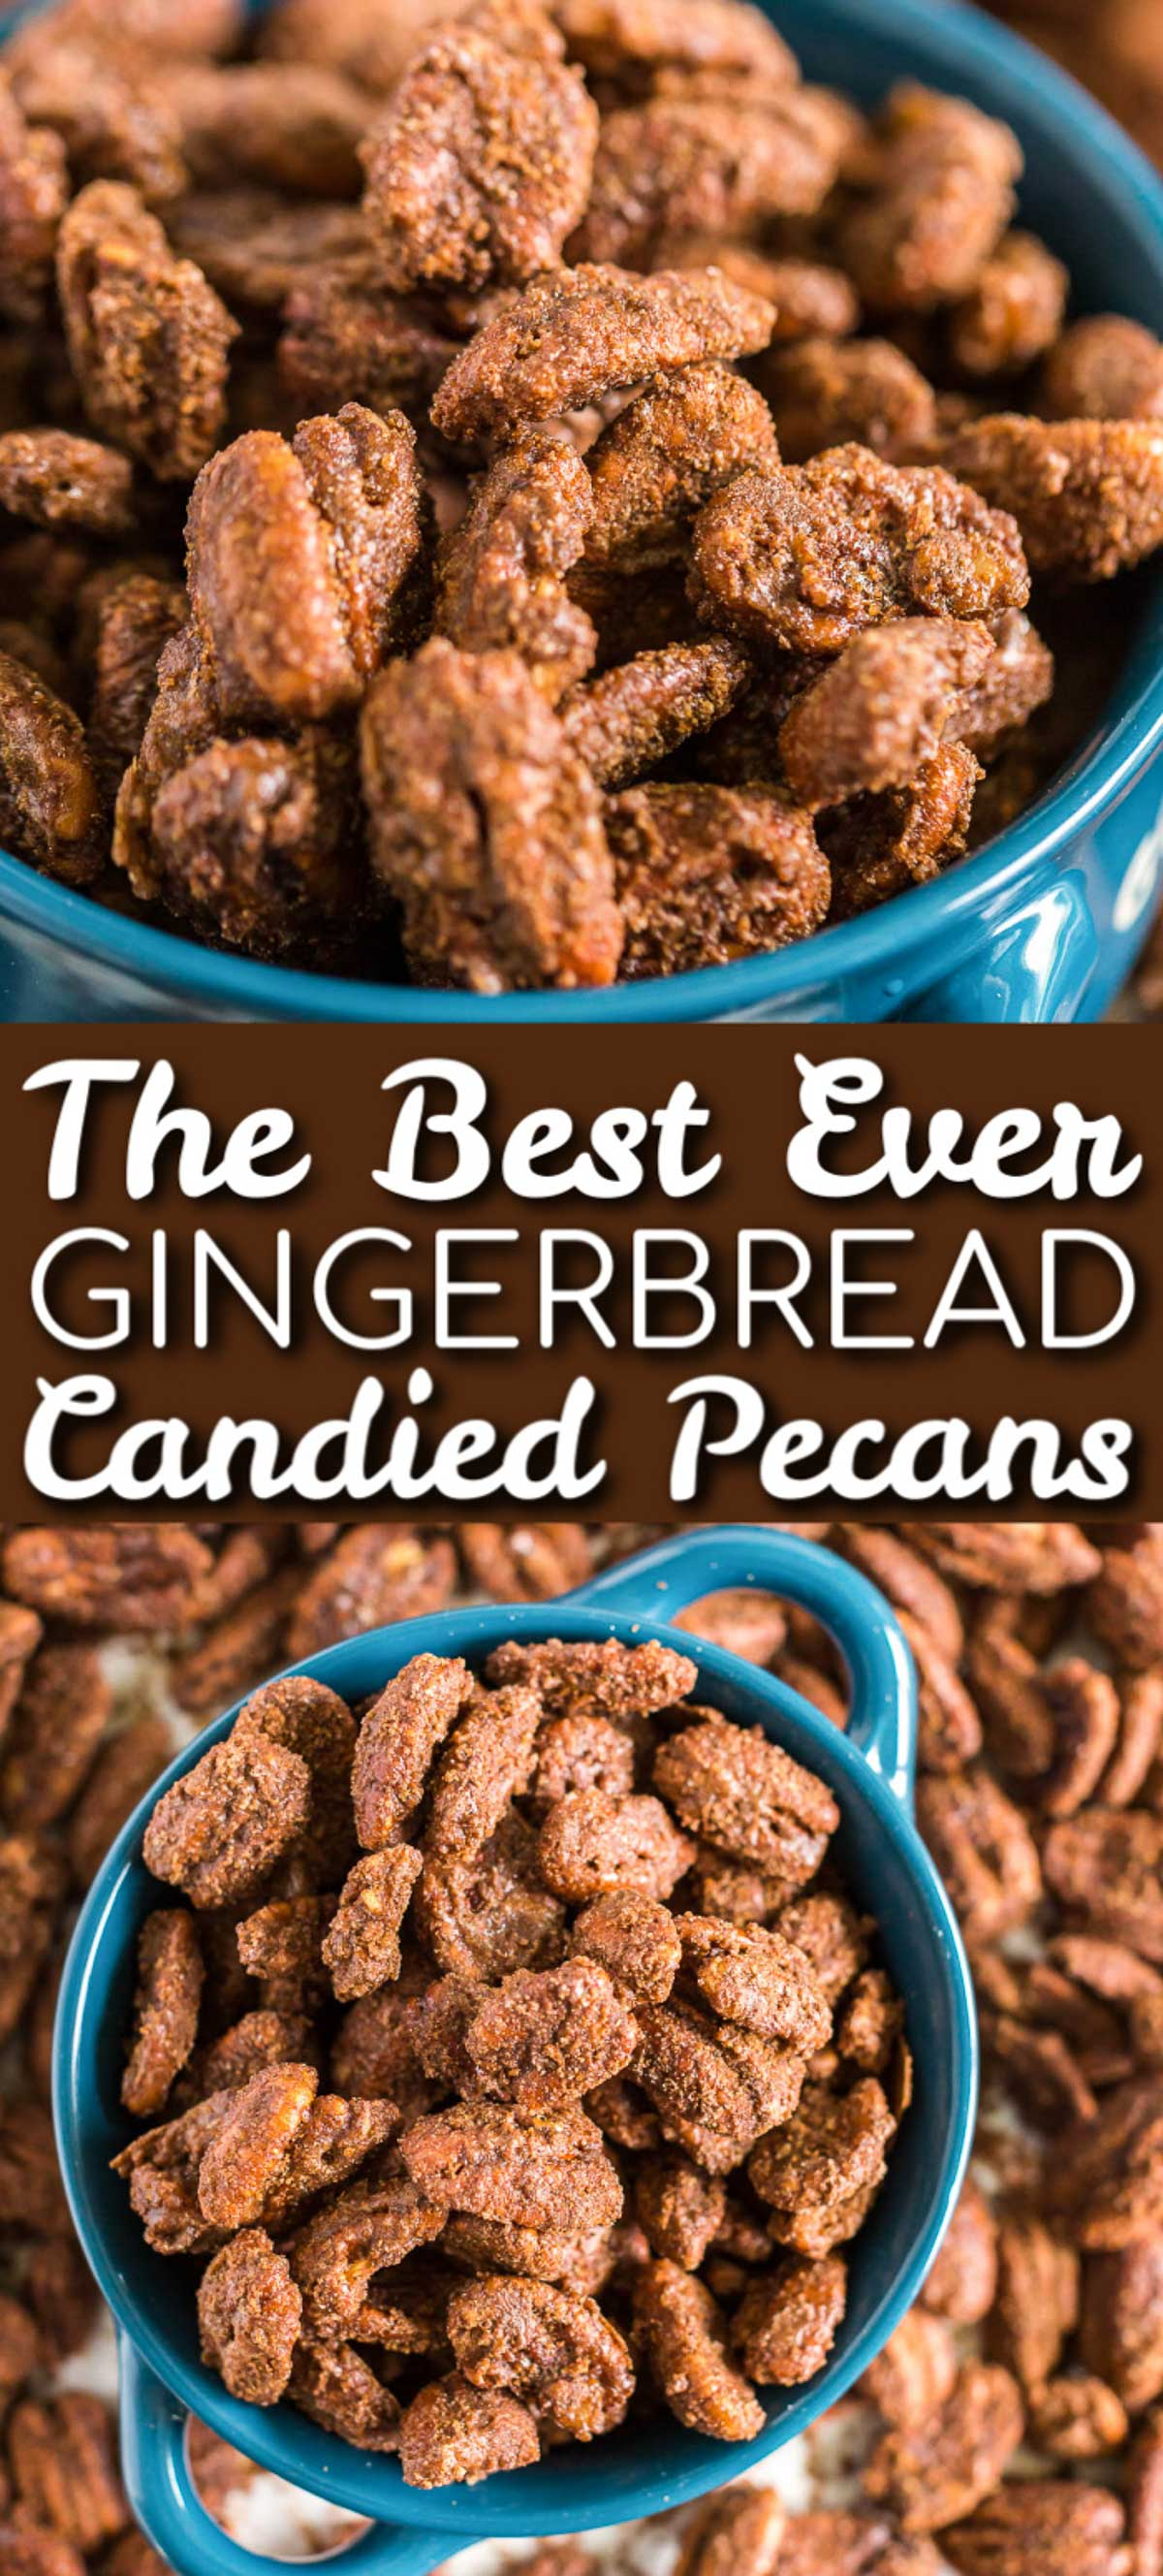 Gingerbread Candied Pecans can add holiday spice to salads, pies, or nut mixes. Package them in a jar and tie with a ribbon, you have a perfect DIY hostess gift!  via @sugarandsoulco